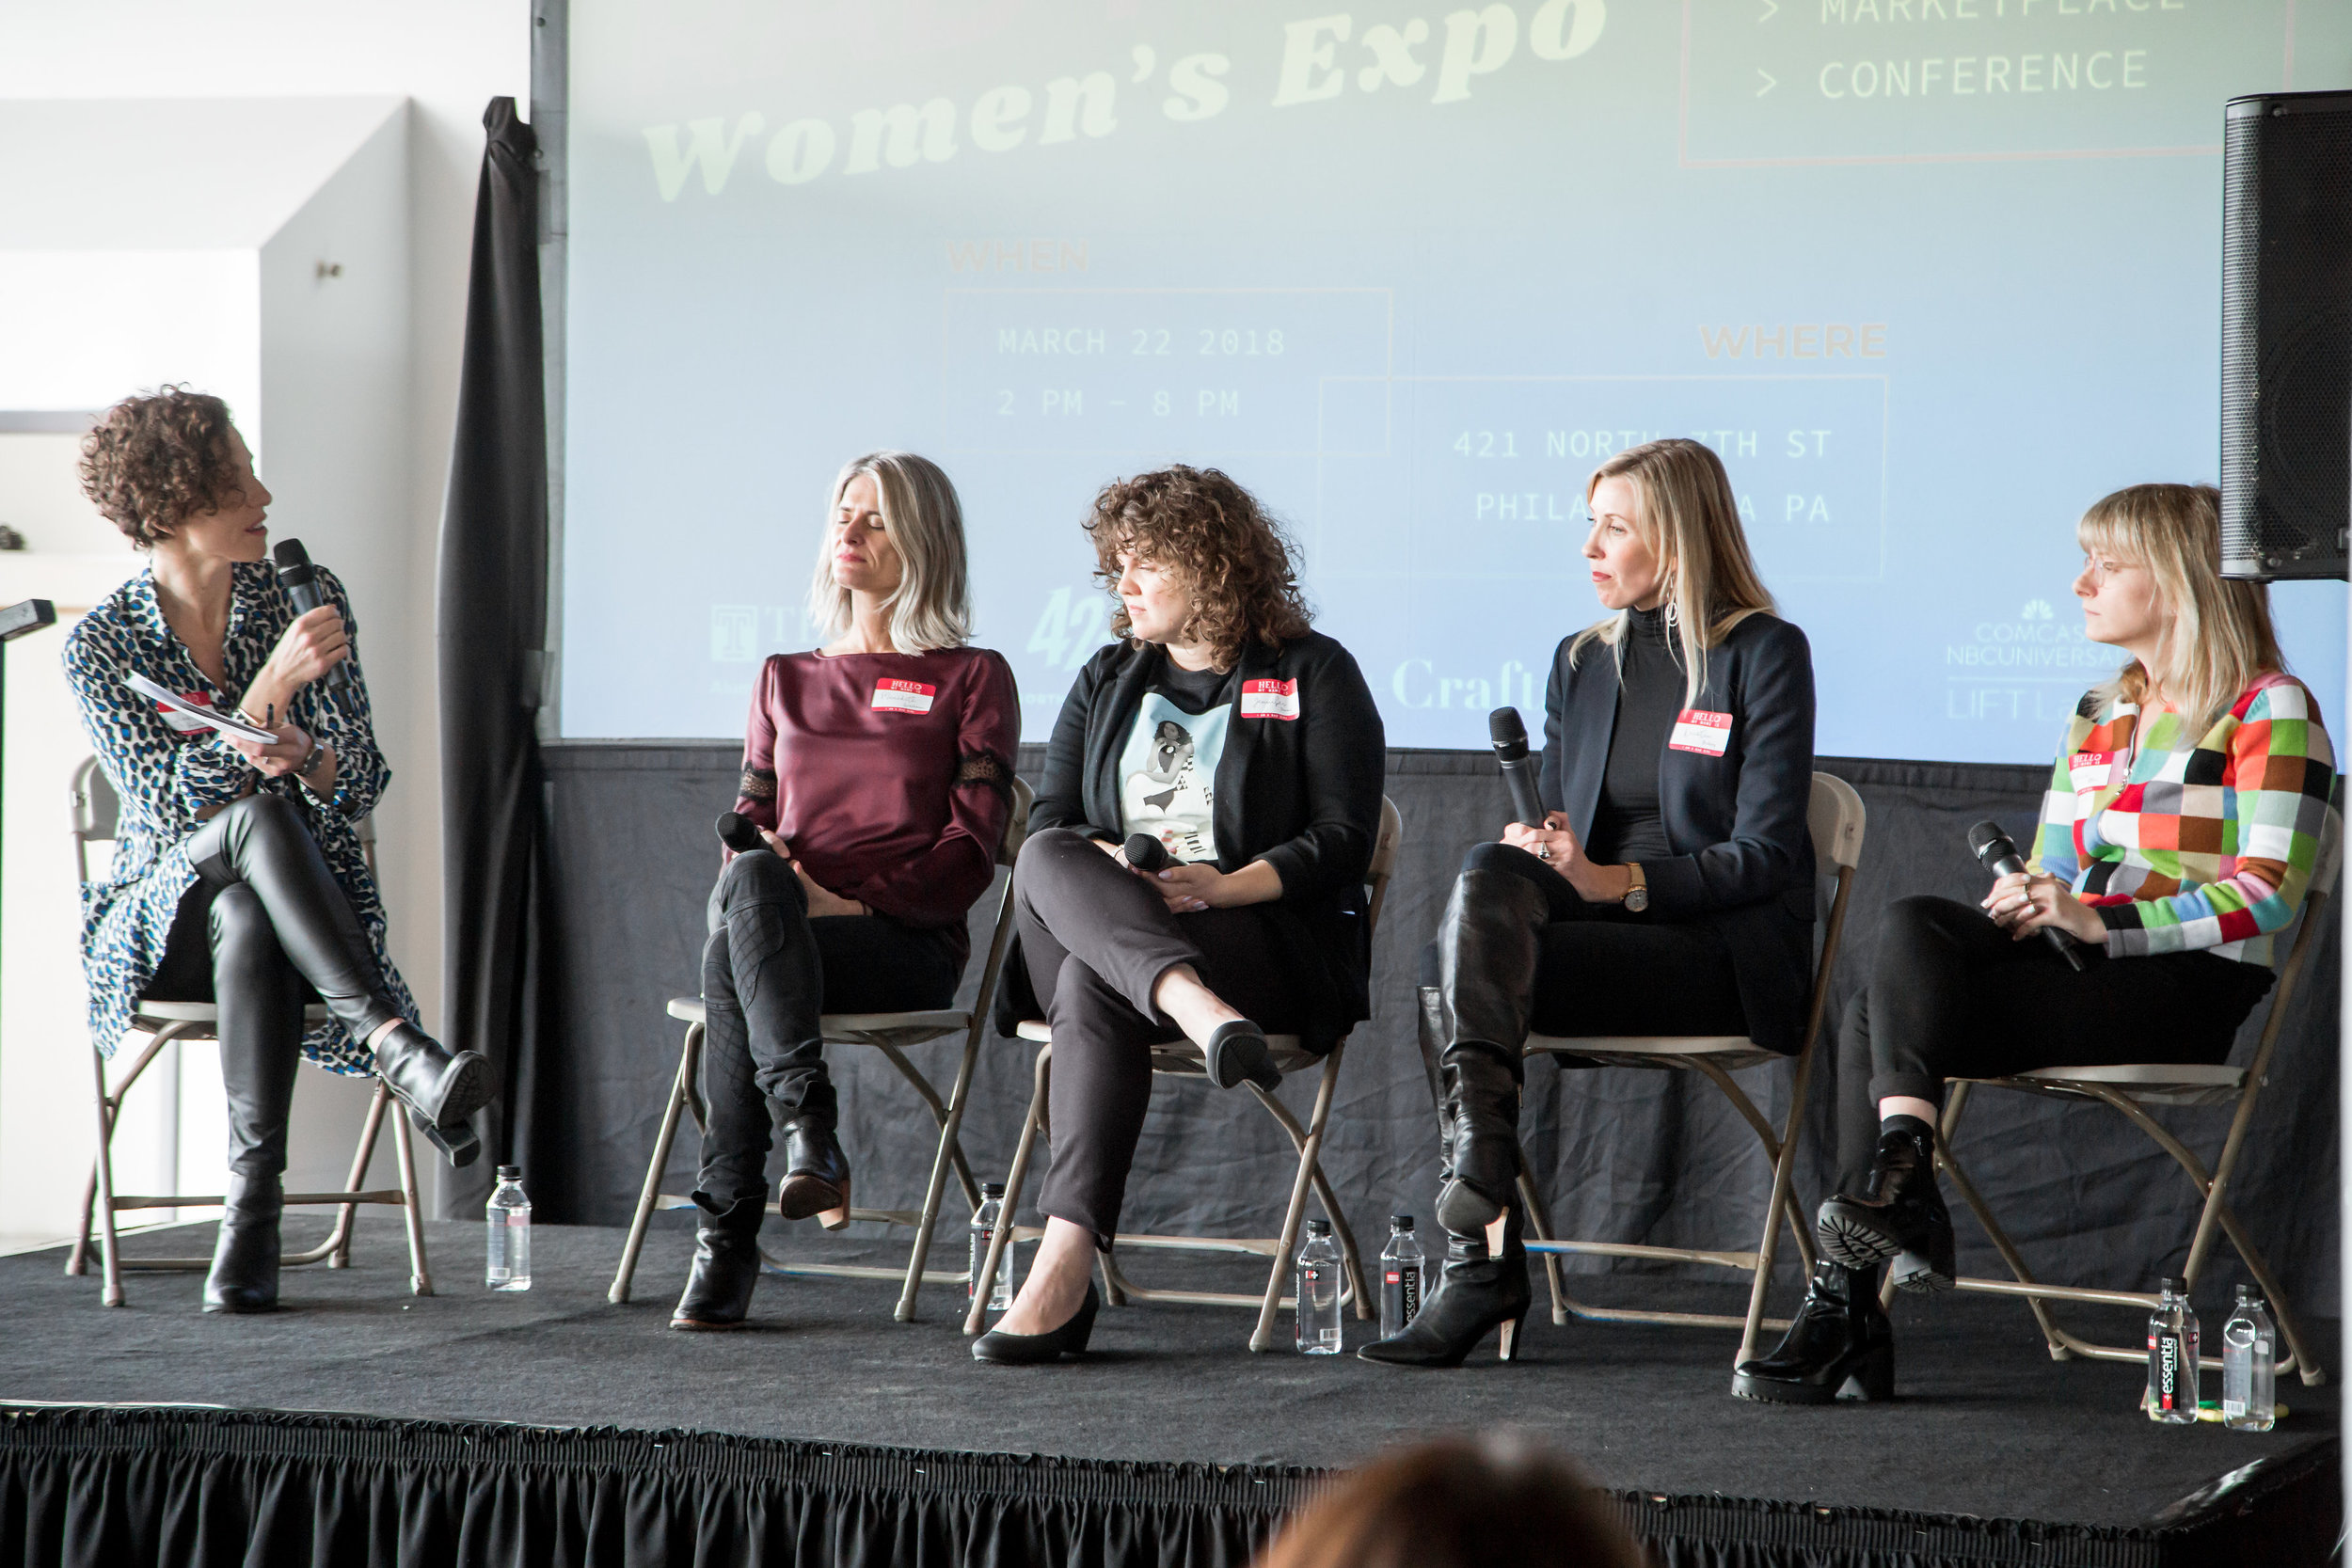 Everything You Need To Know About Networking: Moderator Lisa Vaccarelli, AVP Alumni Relations, Temple University. Meredith Waldman, Founder of Rally. Jennifer Devor, Director of Marketing, Campus Philly.Kristin Dudley, Founder of Co-Create. Rebecca Etter, Senior Manager of Innovation at Acelerada.  Photo by Creative Outfit, Inc.